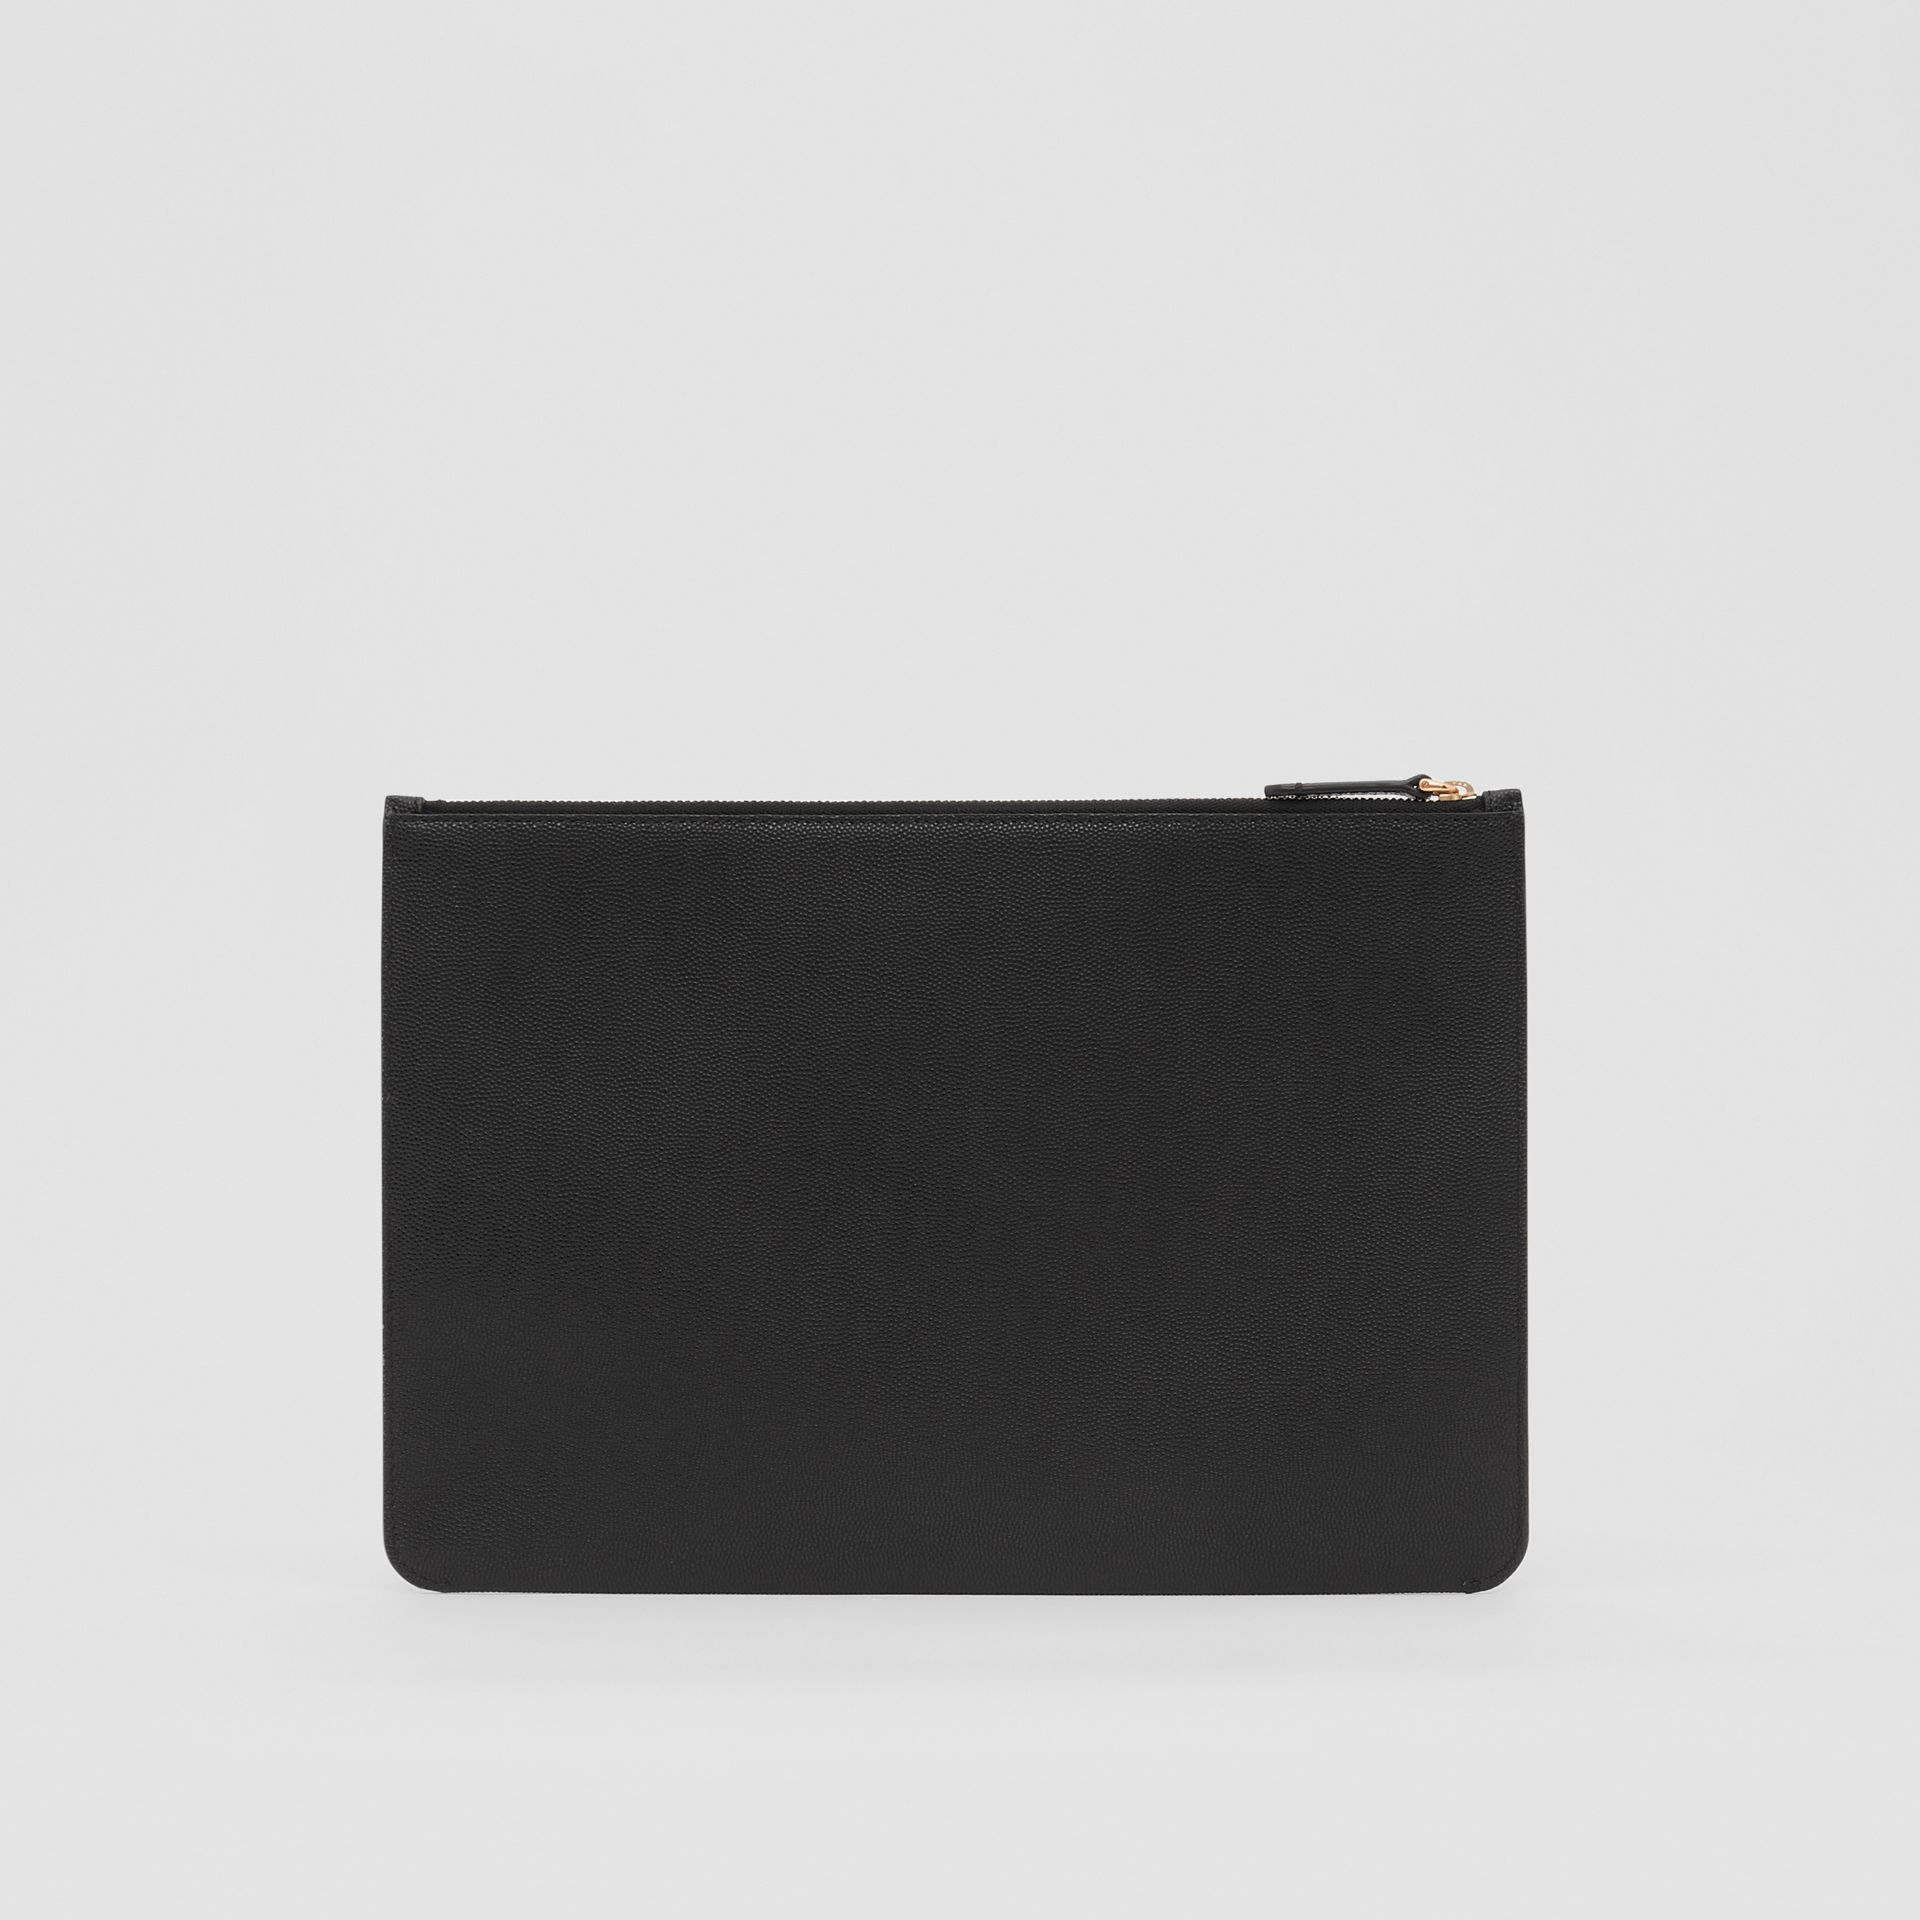 Monogram Motif Grainy Leather Pouch in Black - Women | Burberry - gallery image 6